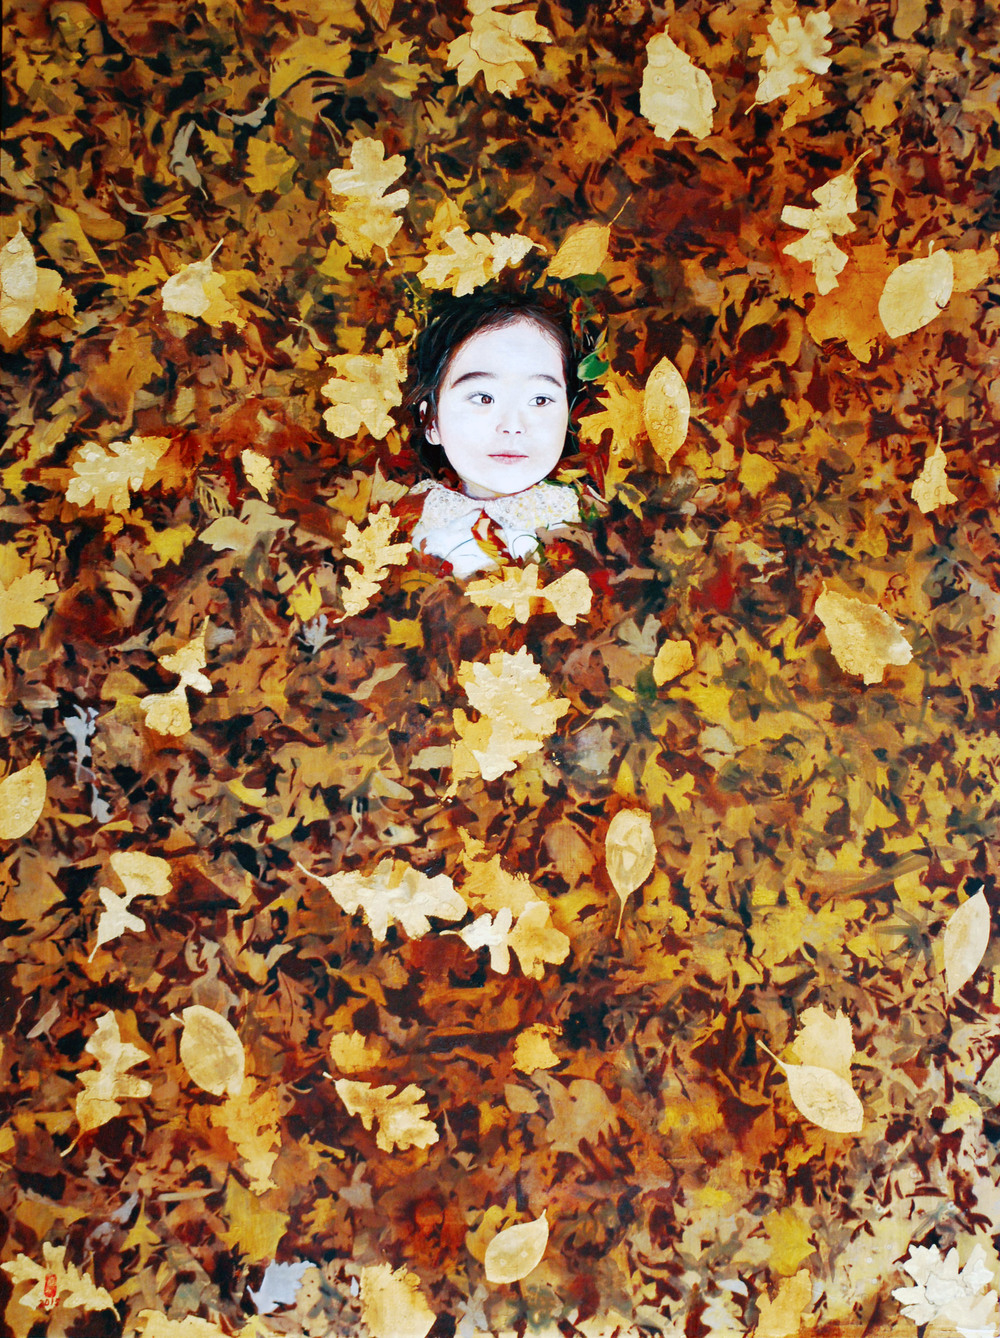 Ten Thousand Leaves III, Oil and Patina on Gold Leafed Panel